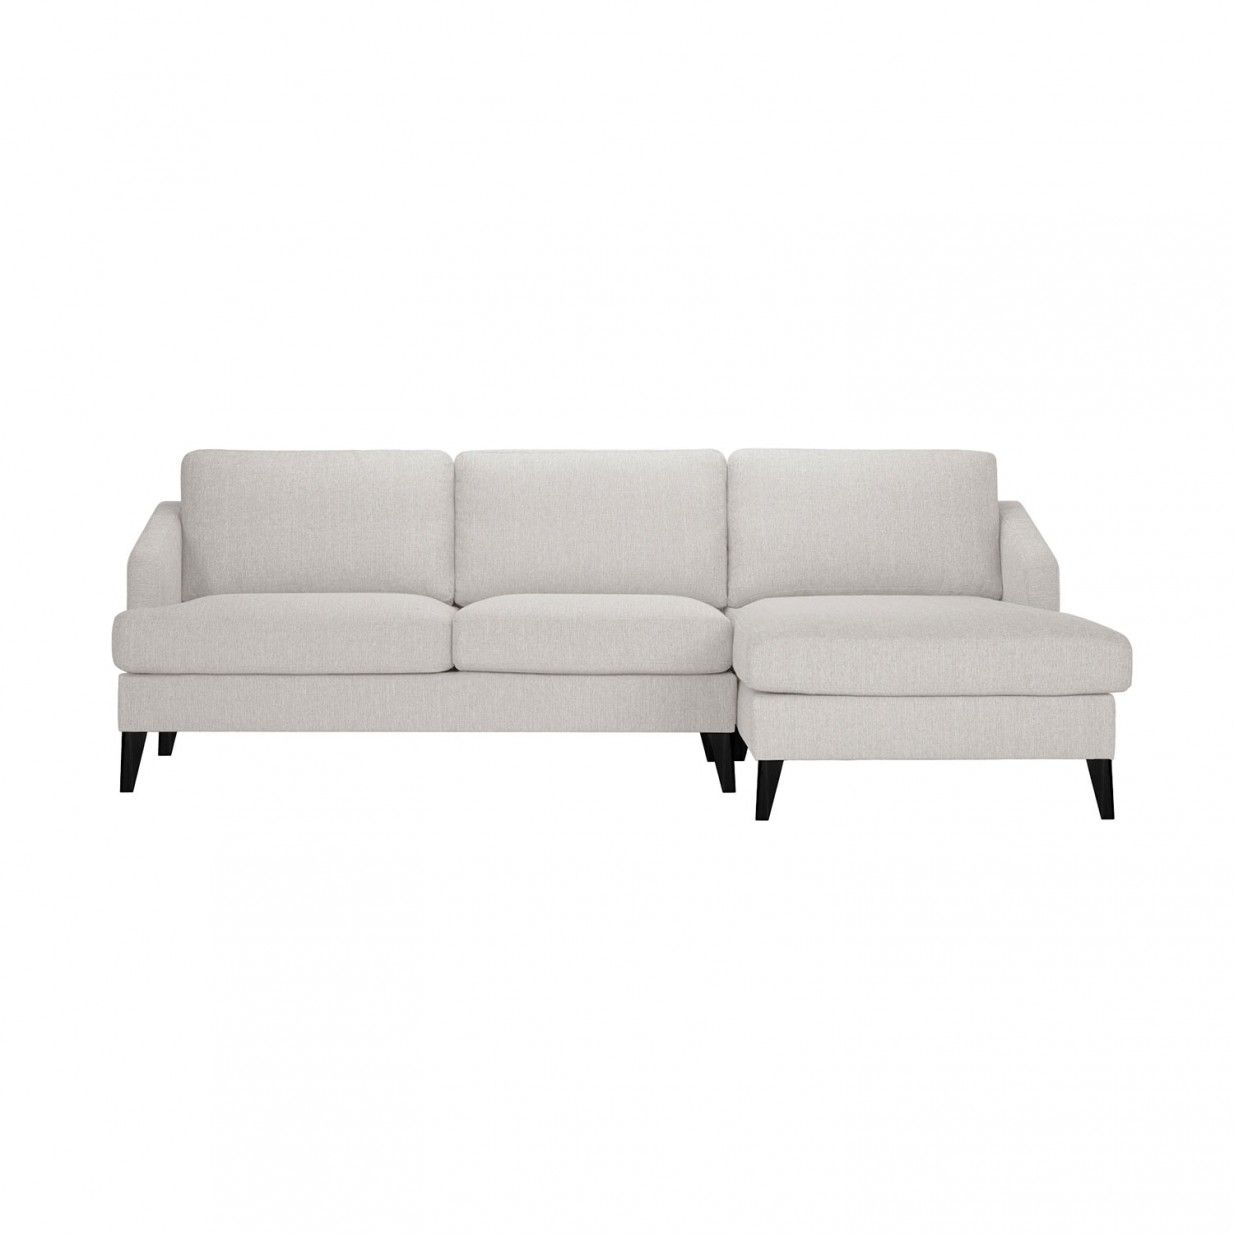 Ecksofa Creme Rechtes Muse Ecksofa - Creme | Guy Laroche Home | Home, Guy Laroche, New Homes